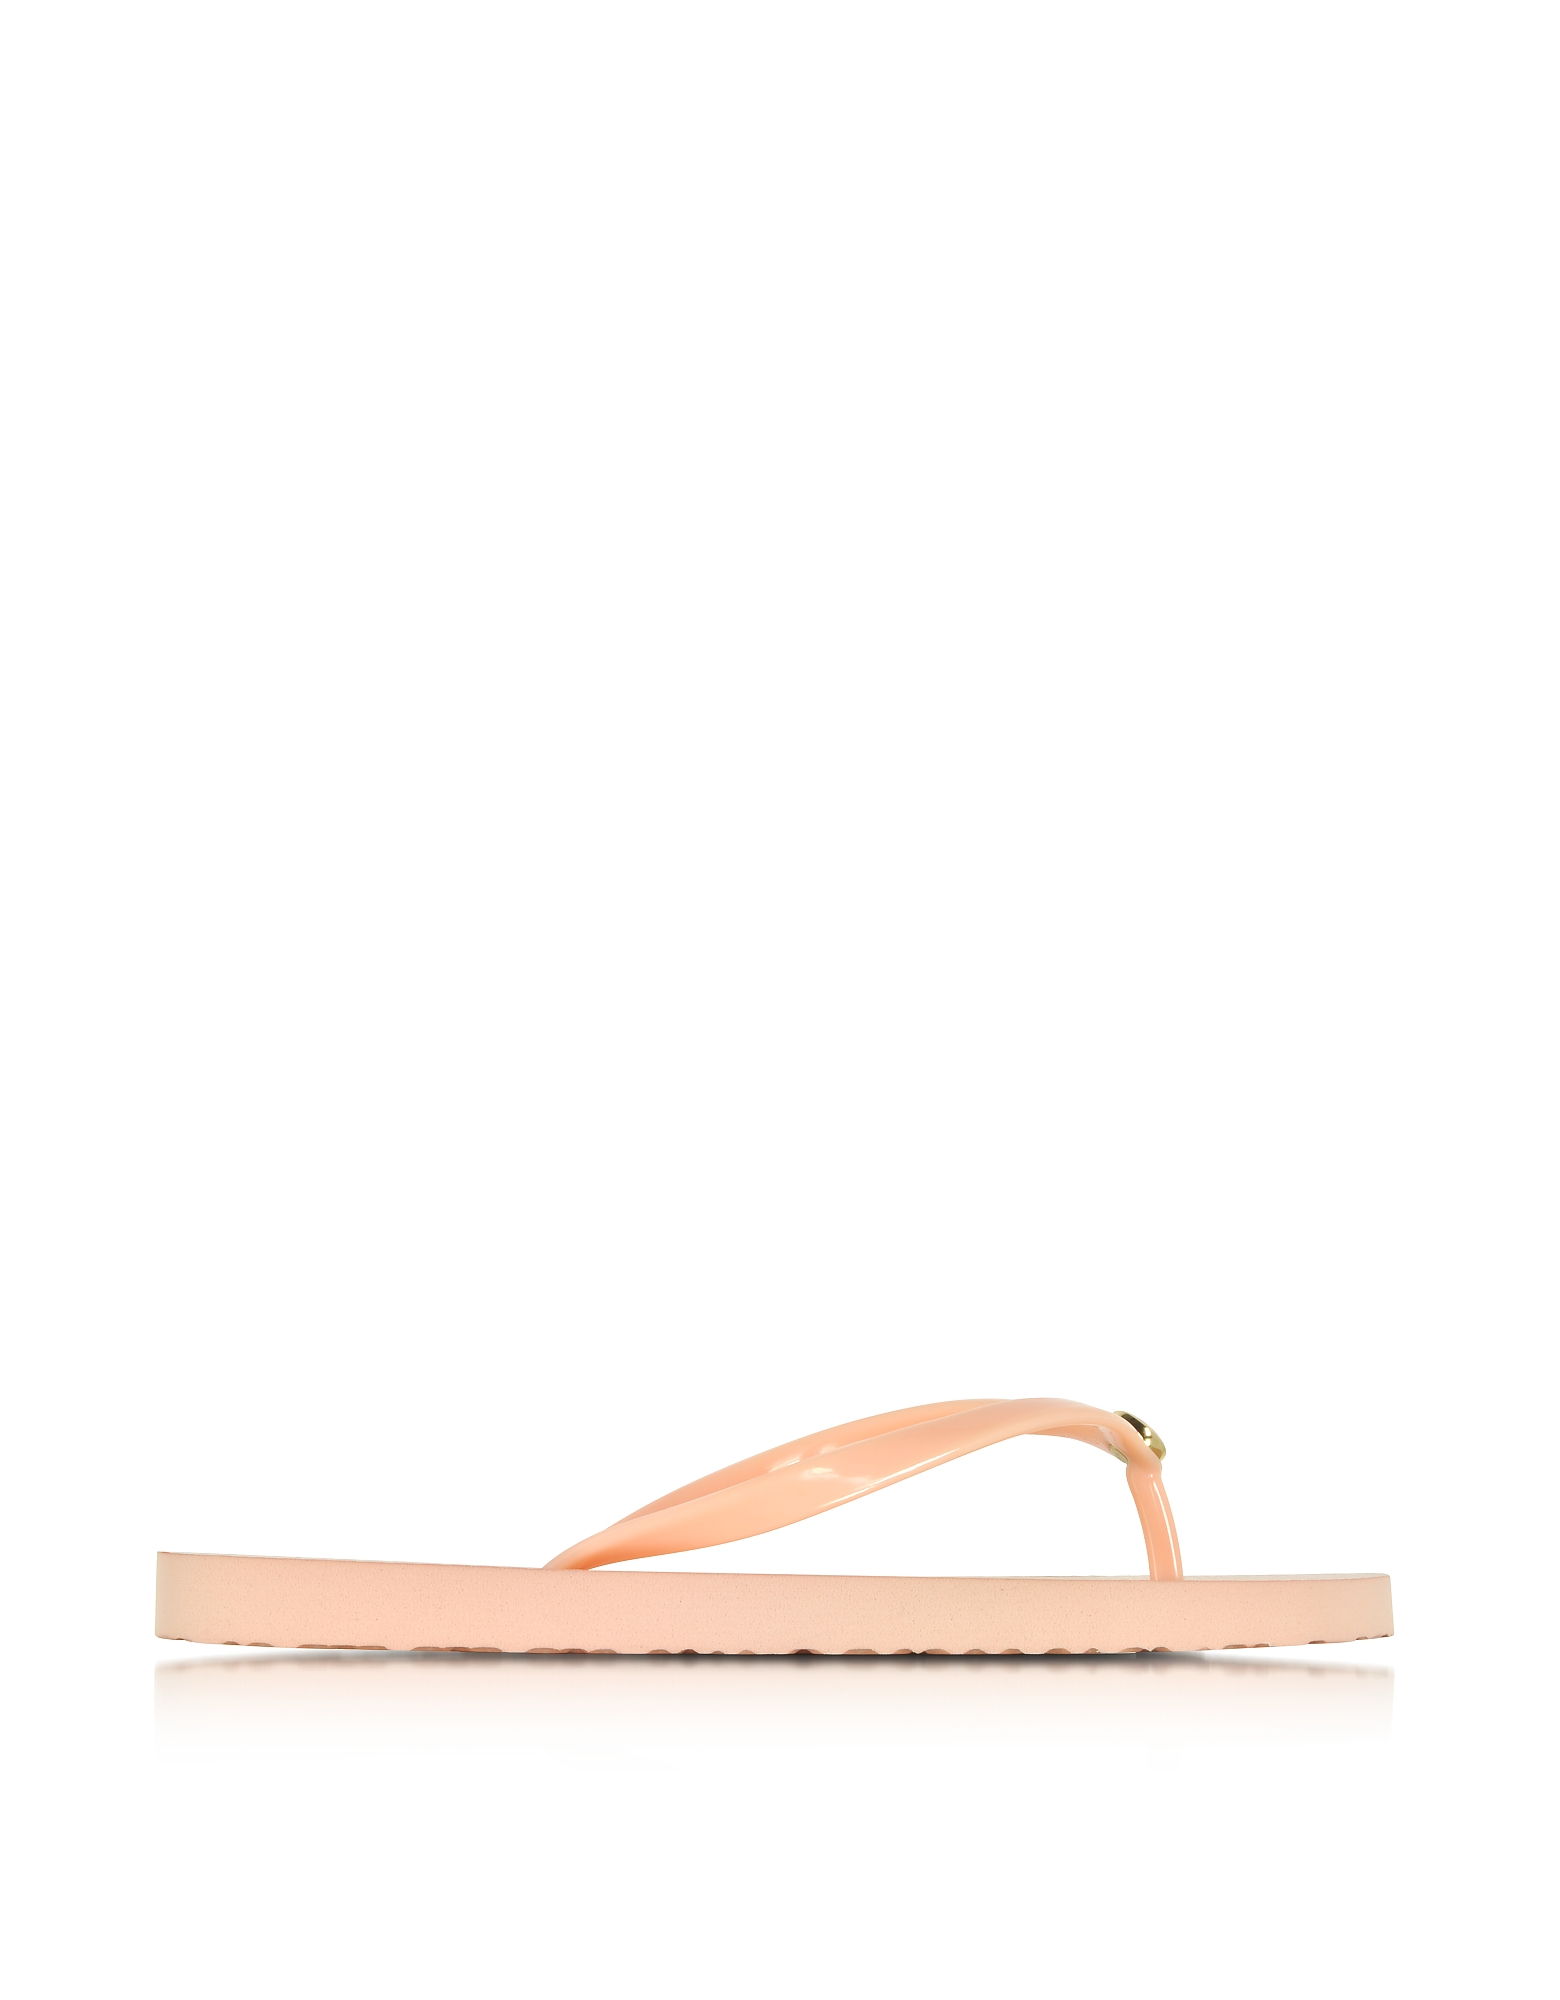 Tory Burch Shoes, Thin Solid Perfect Blush Flip Flop w/Signature Logo